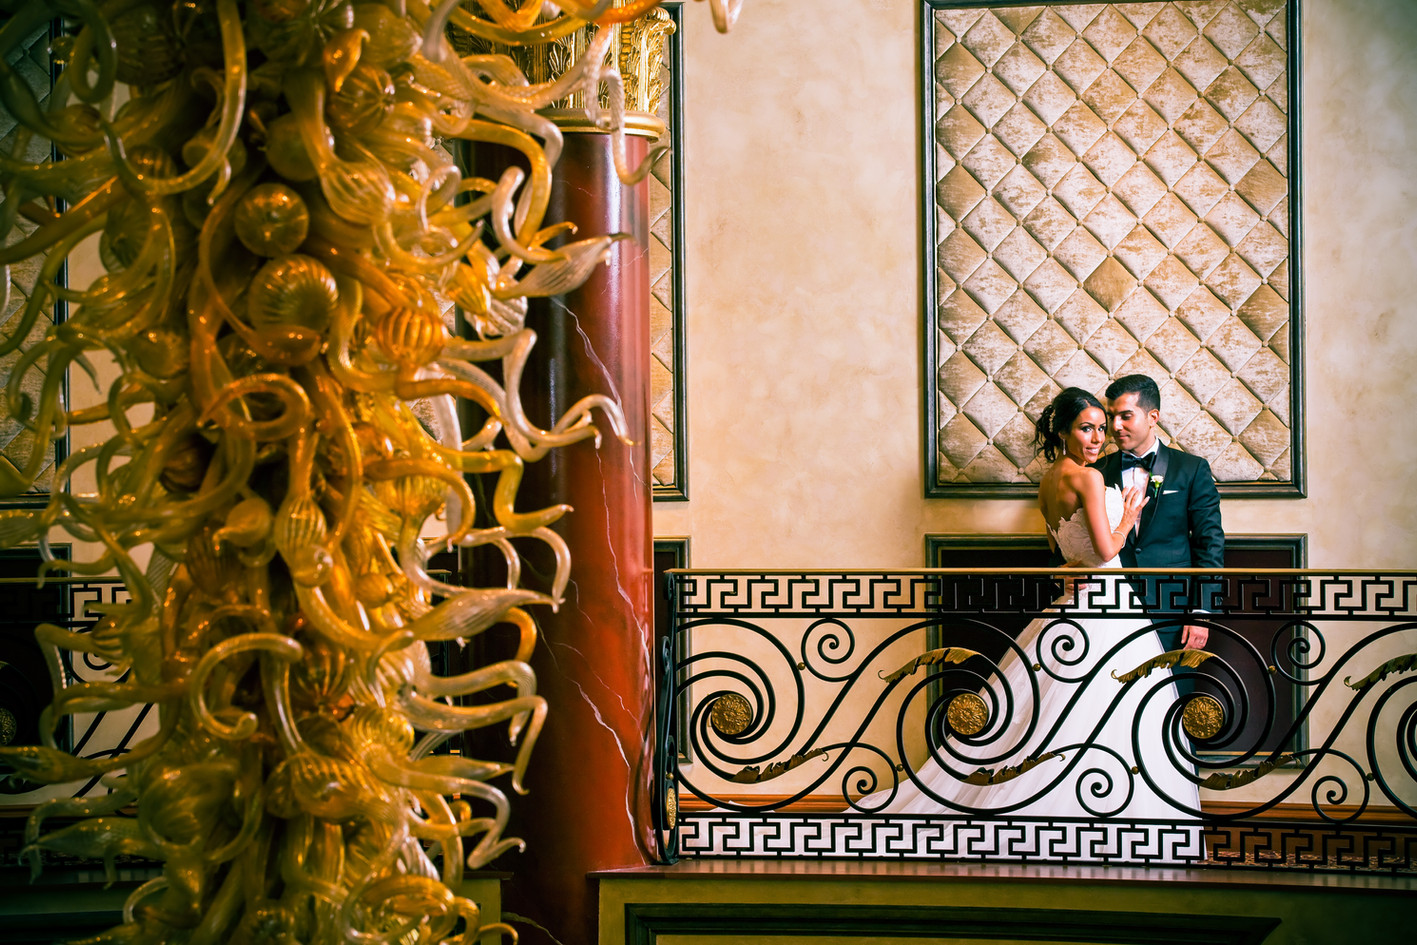 #NJwedding photo at The Venetian by Abella Studios